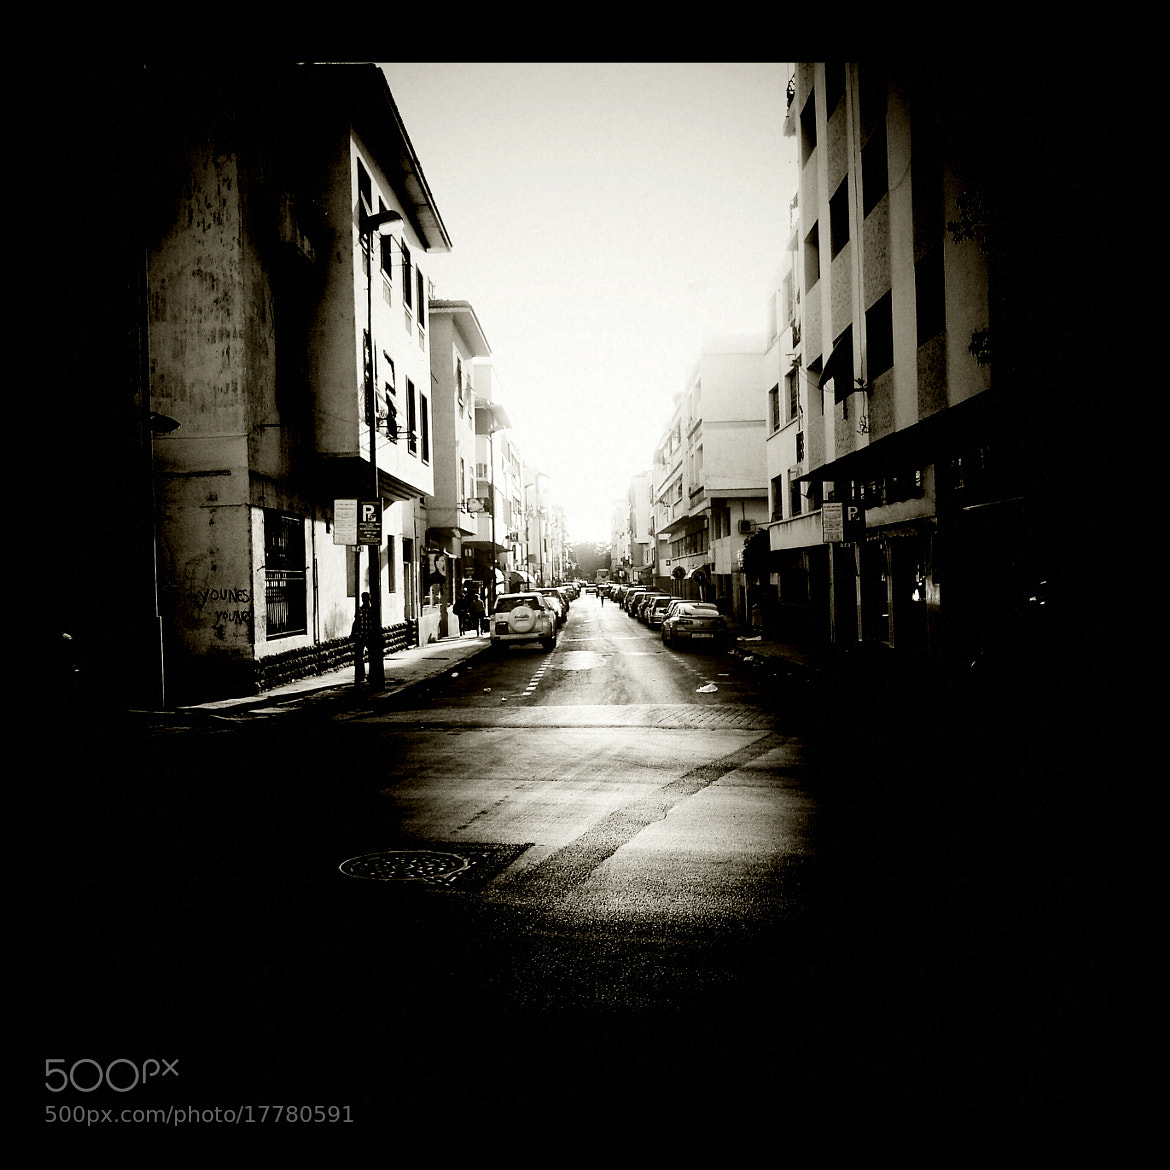 Photograph The street by Youssef Amerniss on 500px